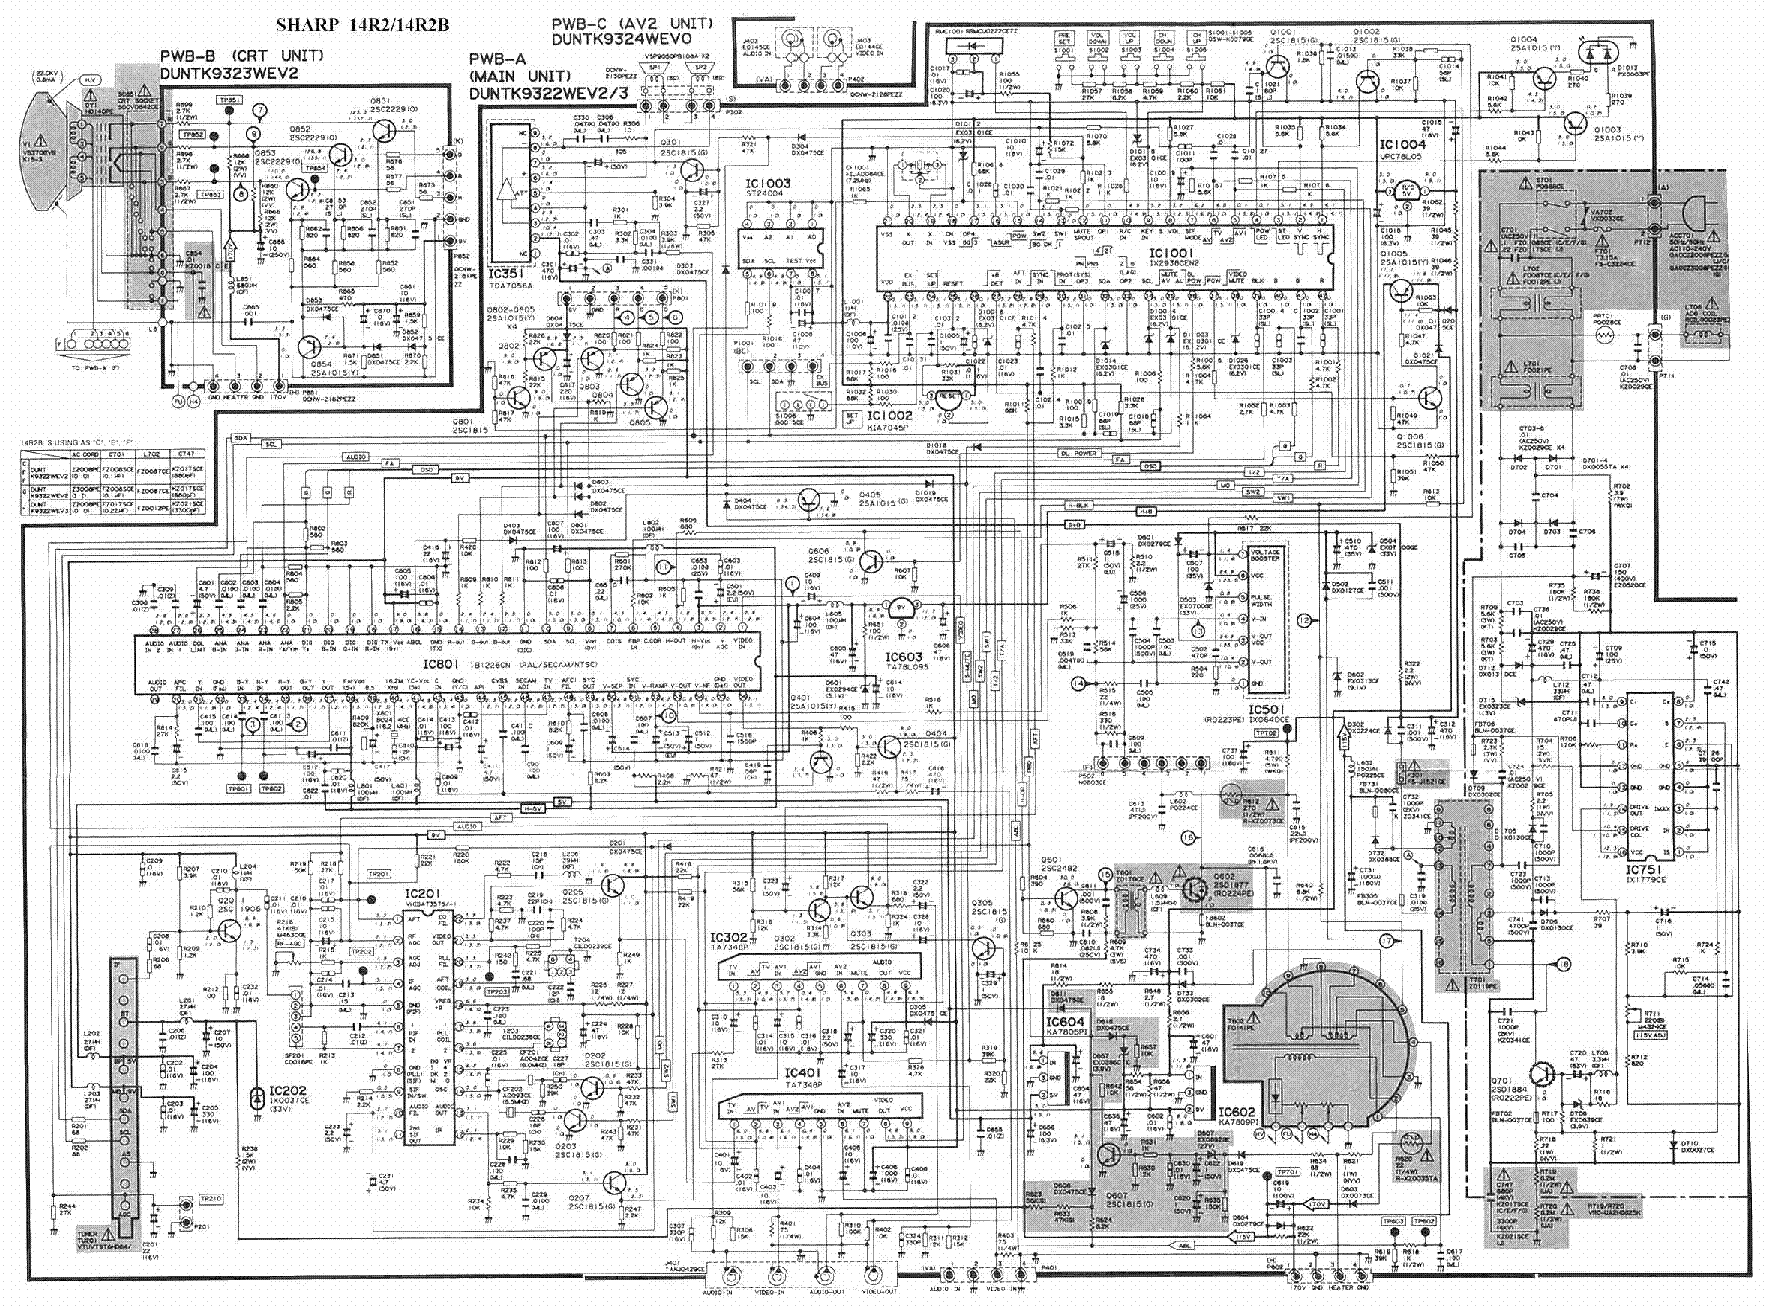 Sharp c1451sc tv d service manual download, schematics, eeprom.